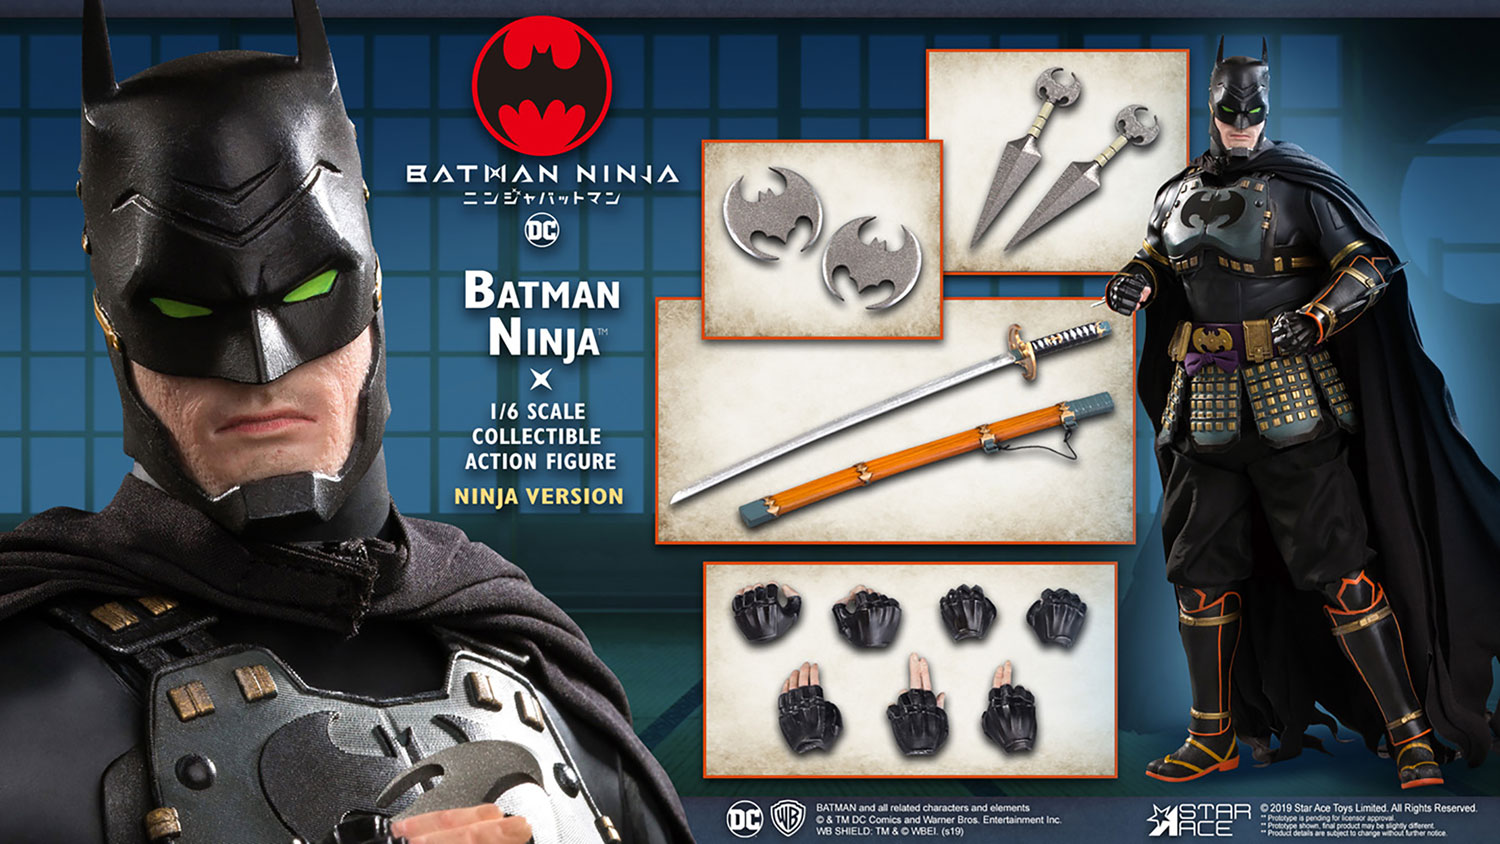 Batman Collectible Action Figure: Ninja  (Ninja version) (1/6 scale) - Star Ace Toys Limited